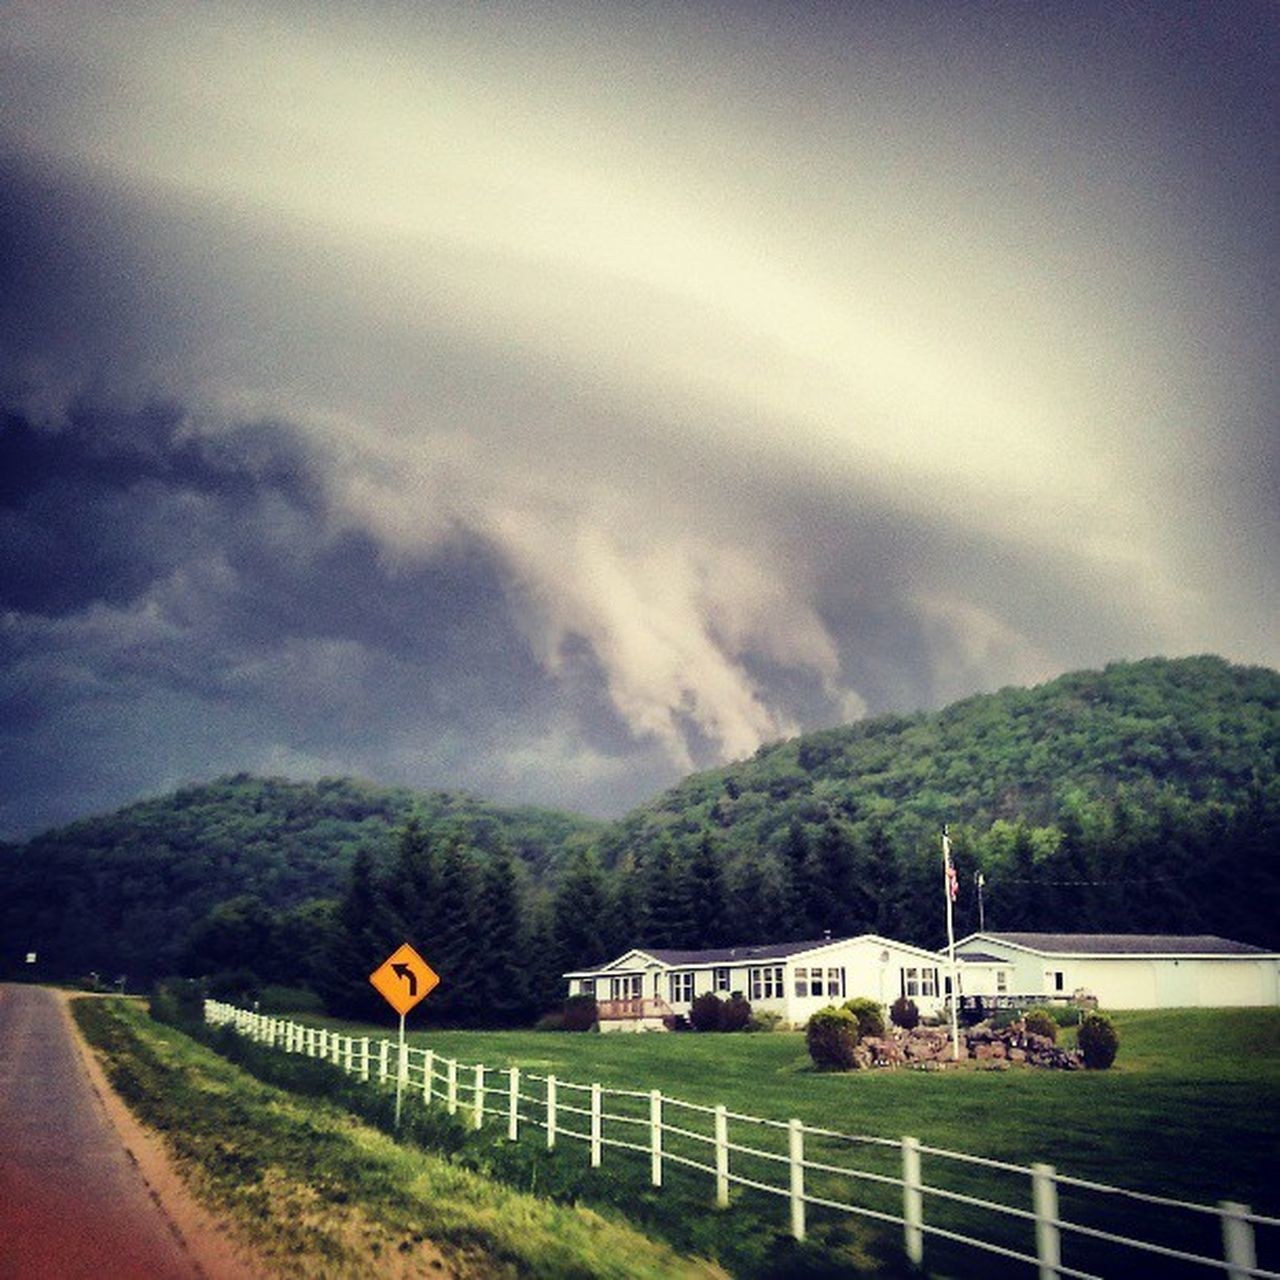 Storm Harpersferry Insane Clouds Tornado Stormchasing Beautiful Nature Awesome Ilovethesky Skyart Earth Is Awesome